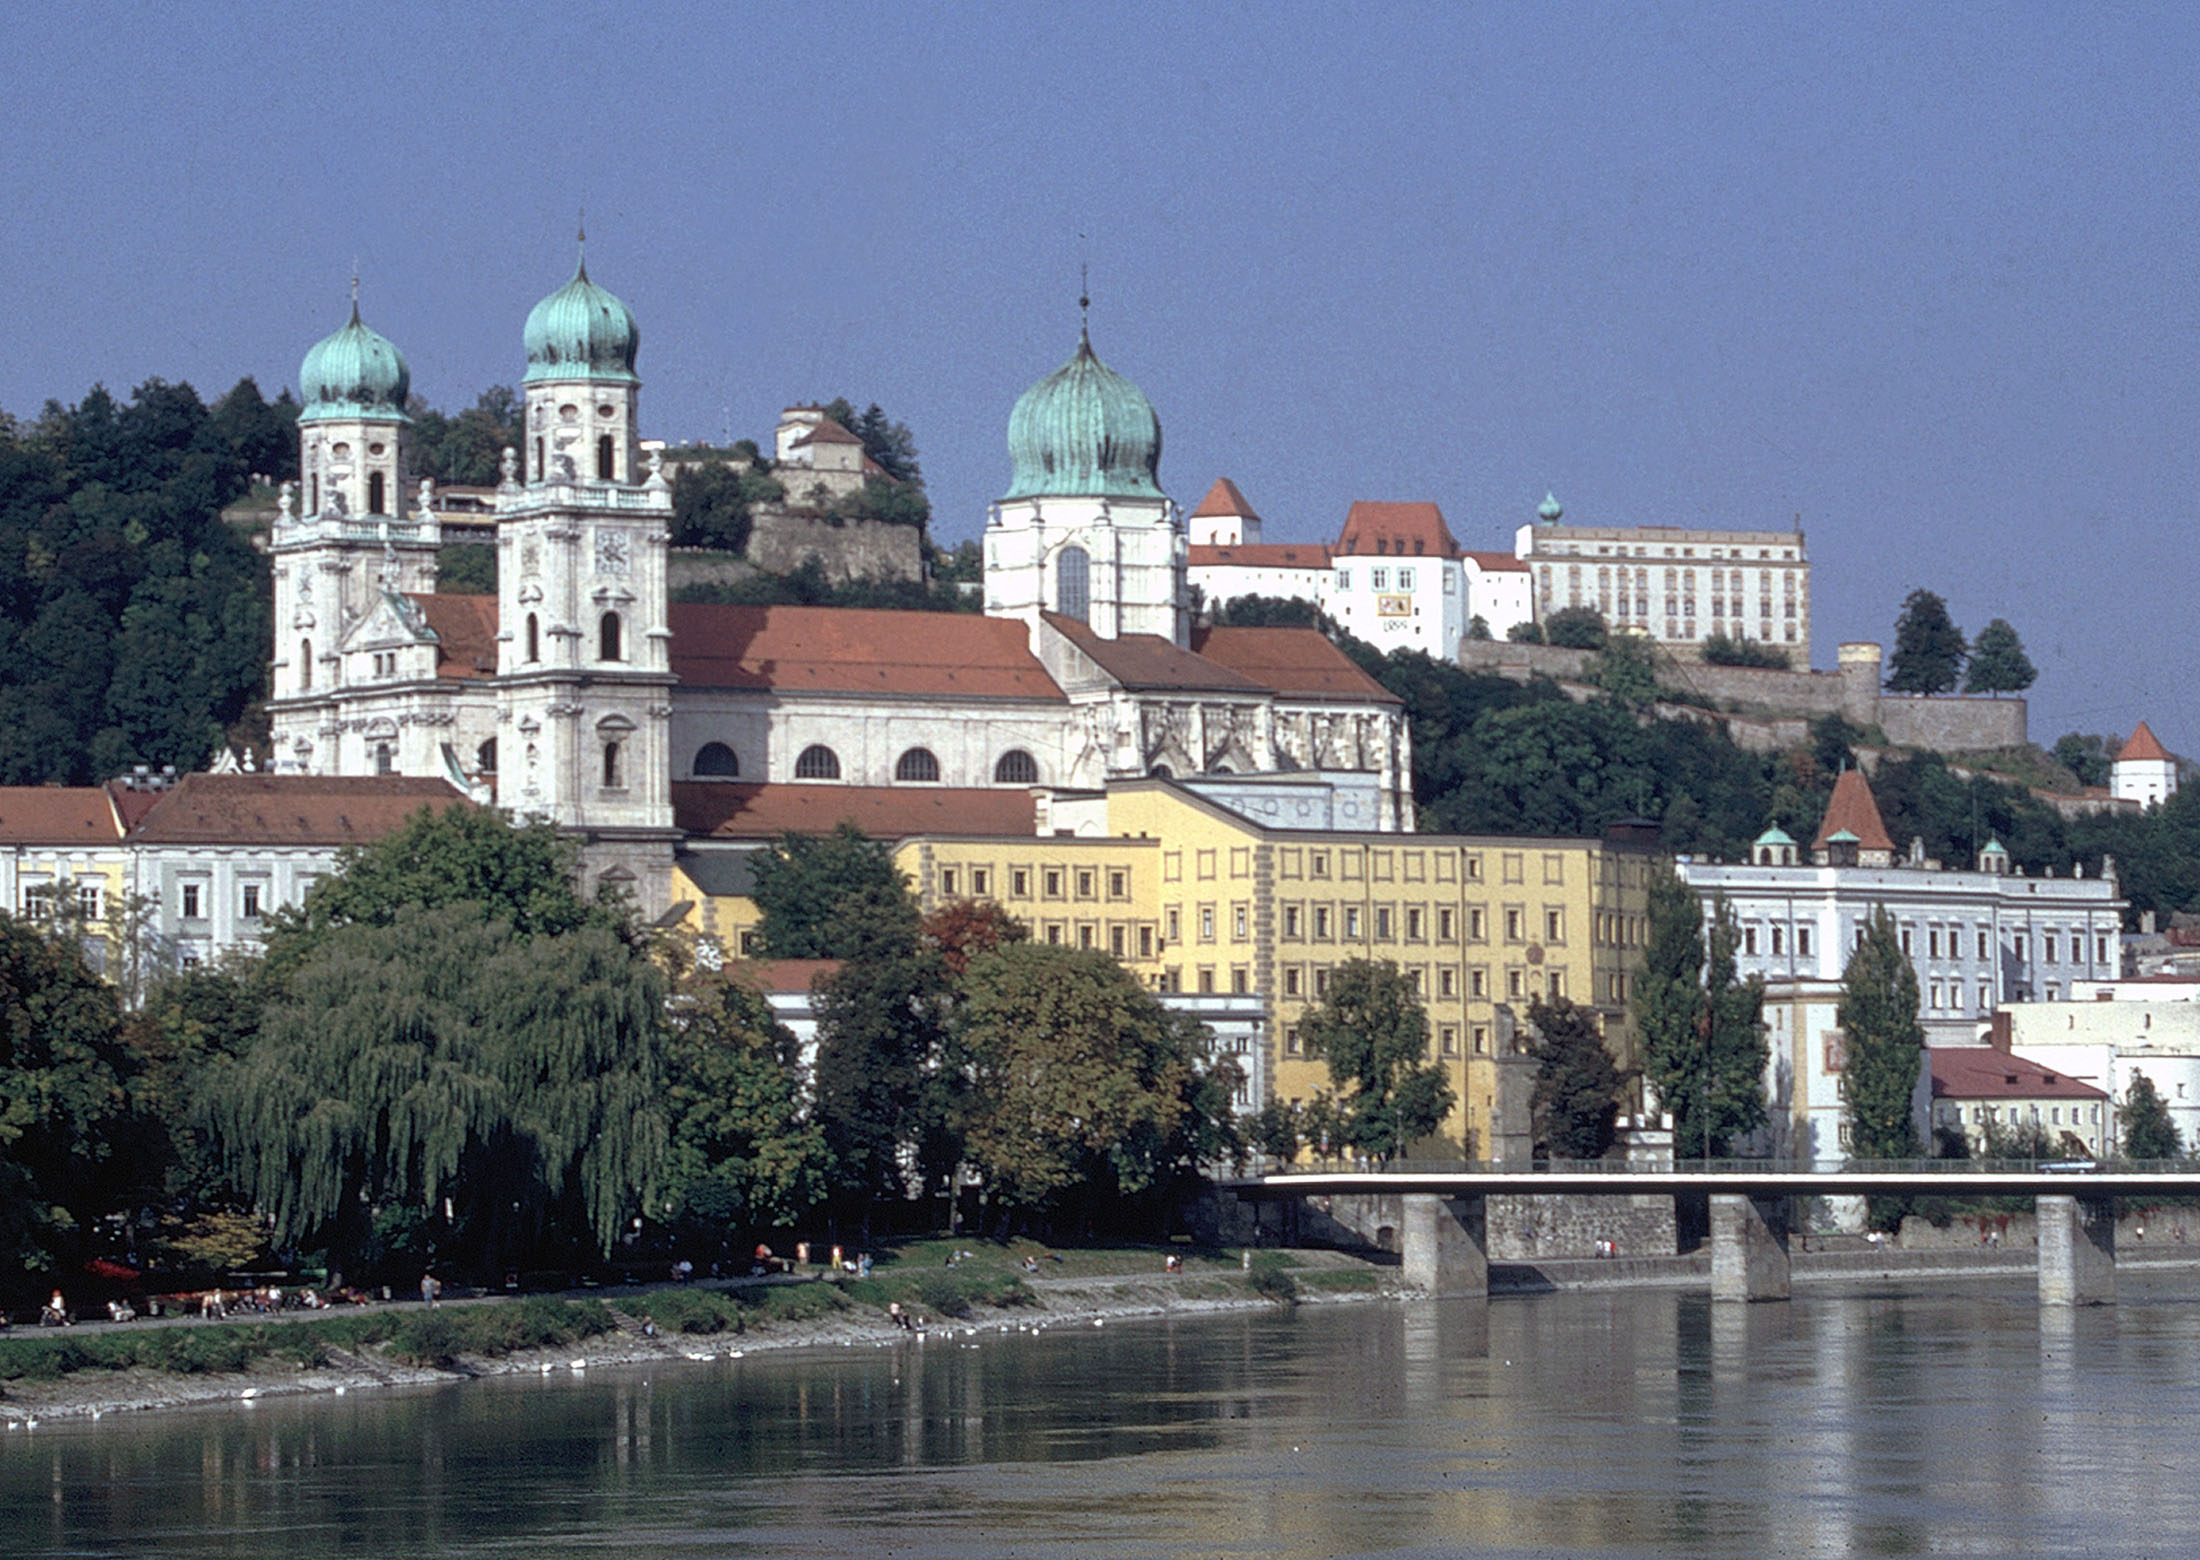 Baroque Old Town of Passau